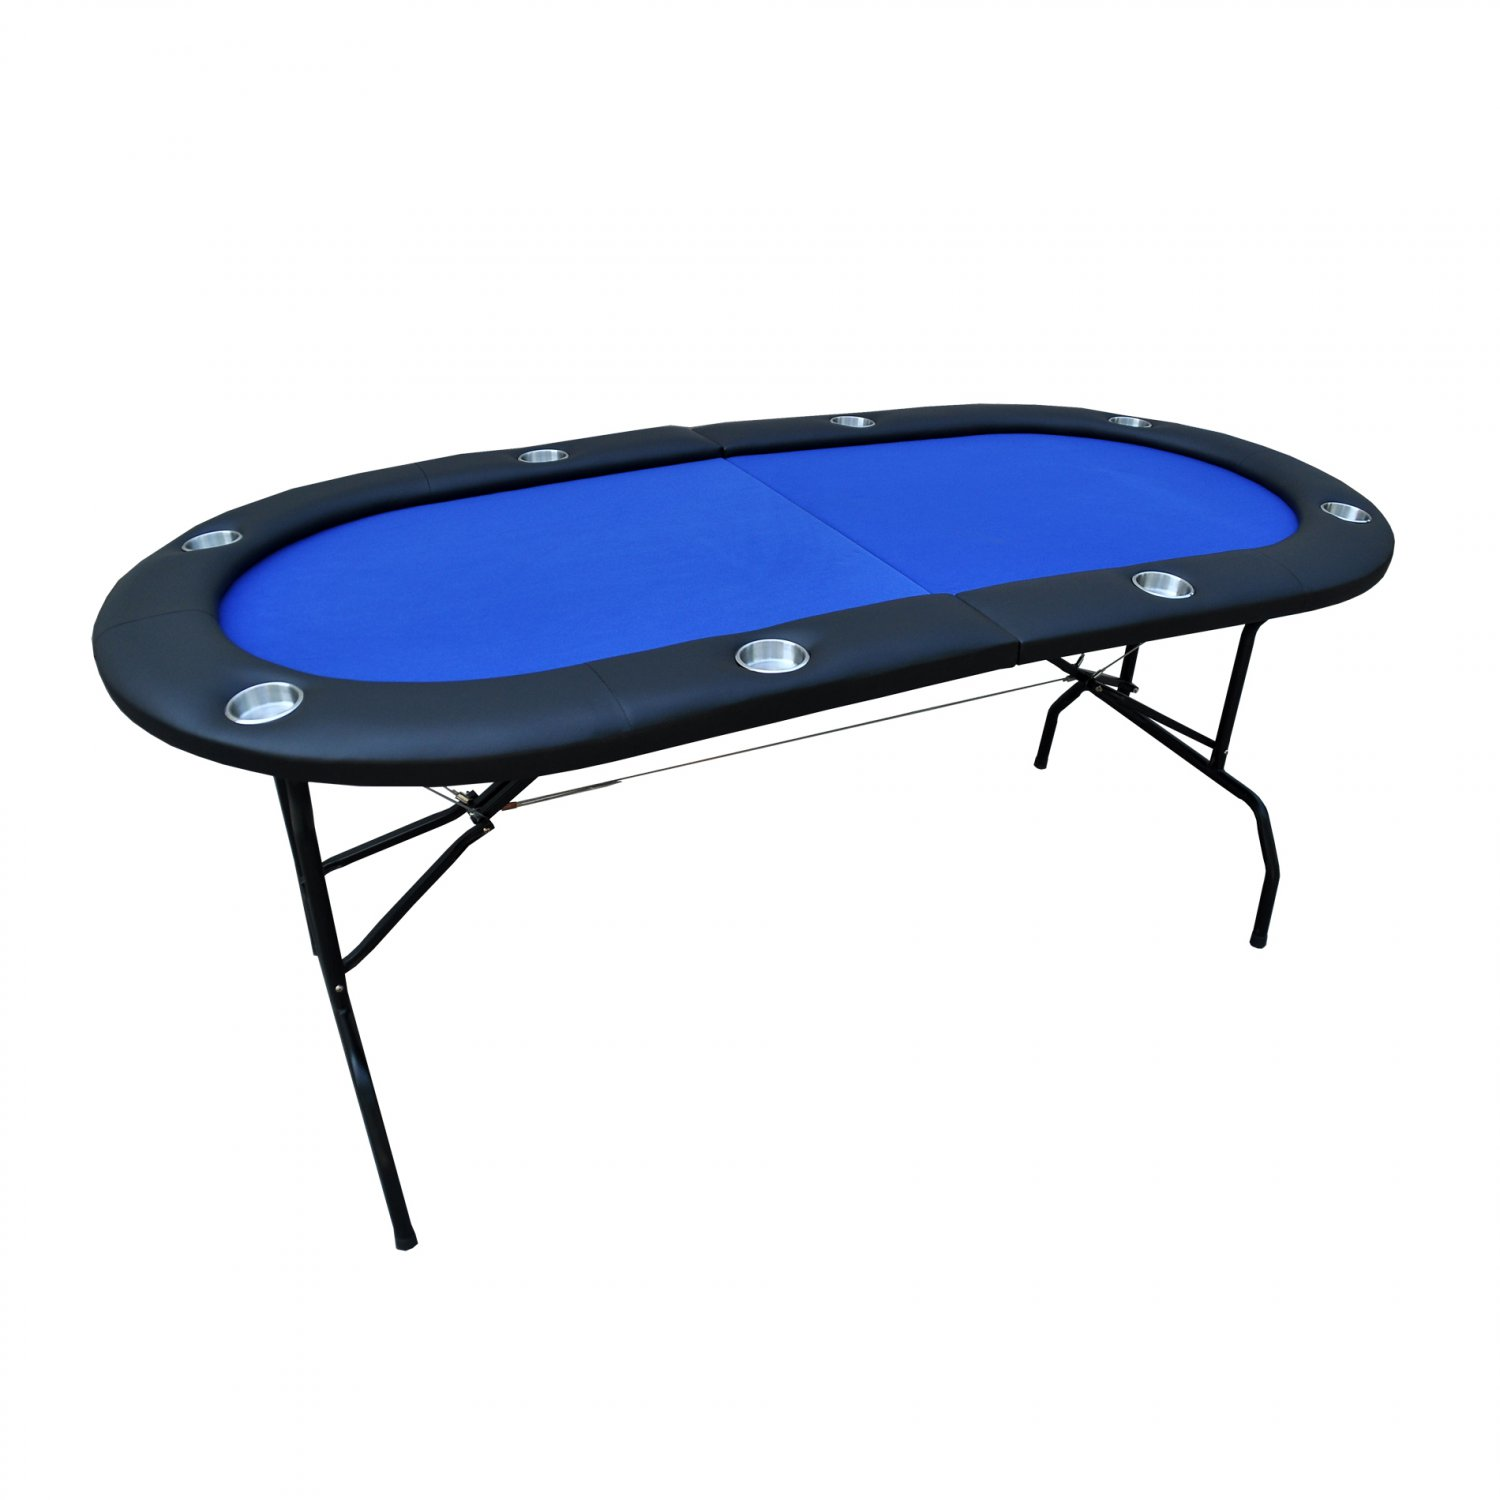 """73"""" 8 Player Foldable Poker Table Casino Texas Holdem Blue Ver.2 (Ship US Country Only)#16361-BL#"""